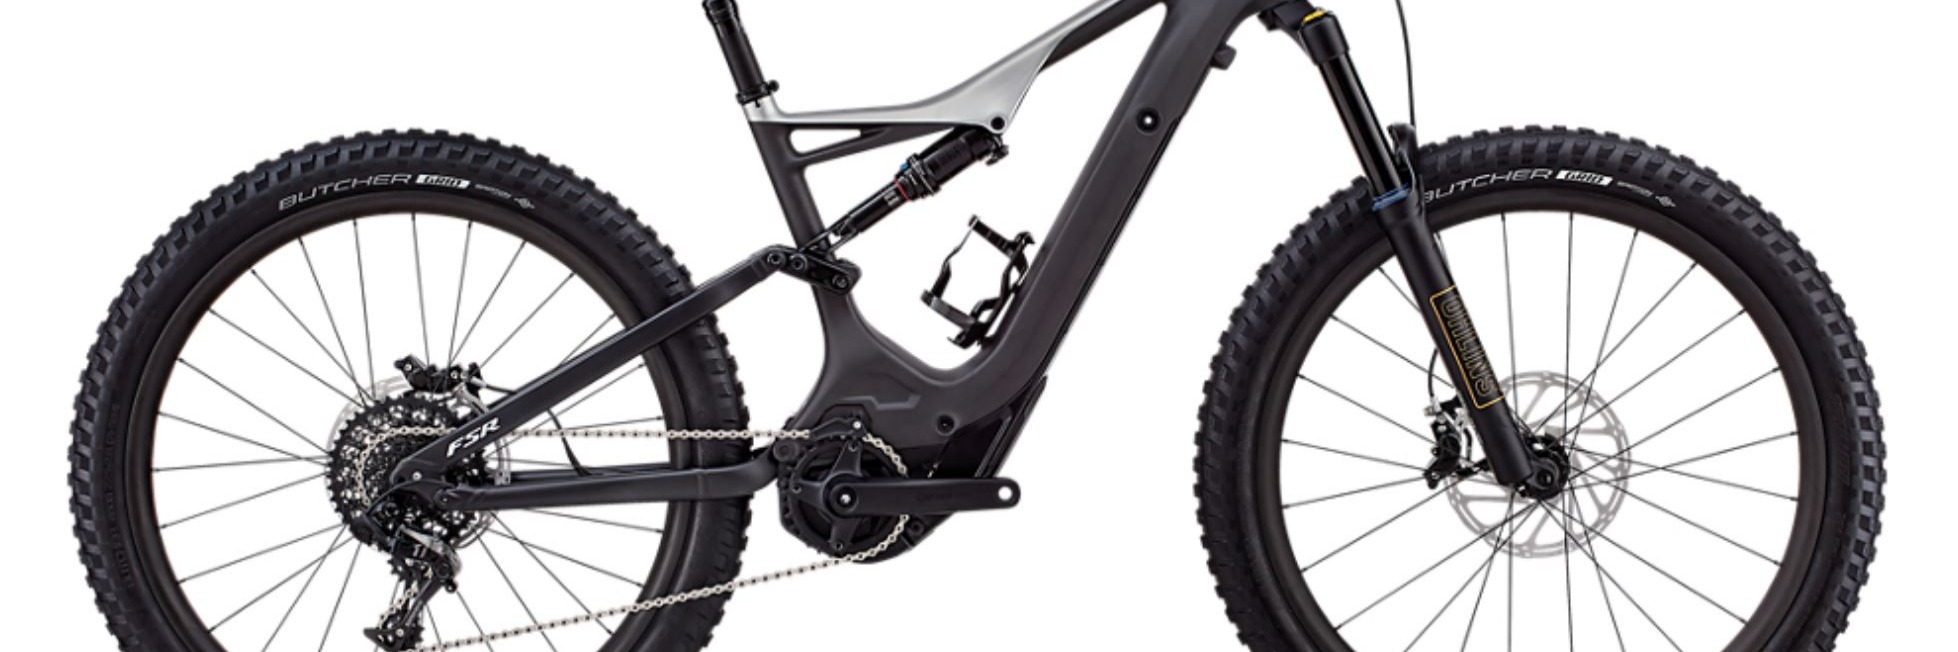 Specialized Turbo Levo Expert Carbon E-MTB